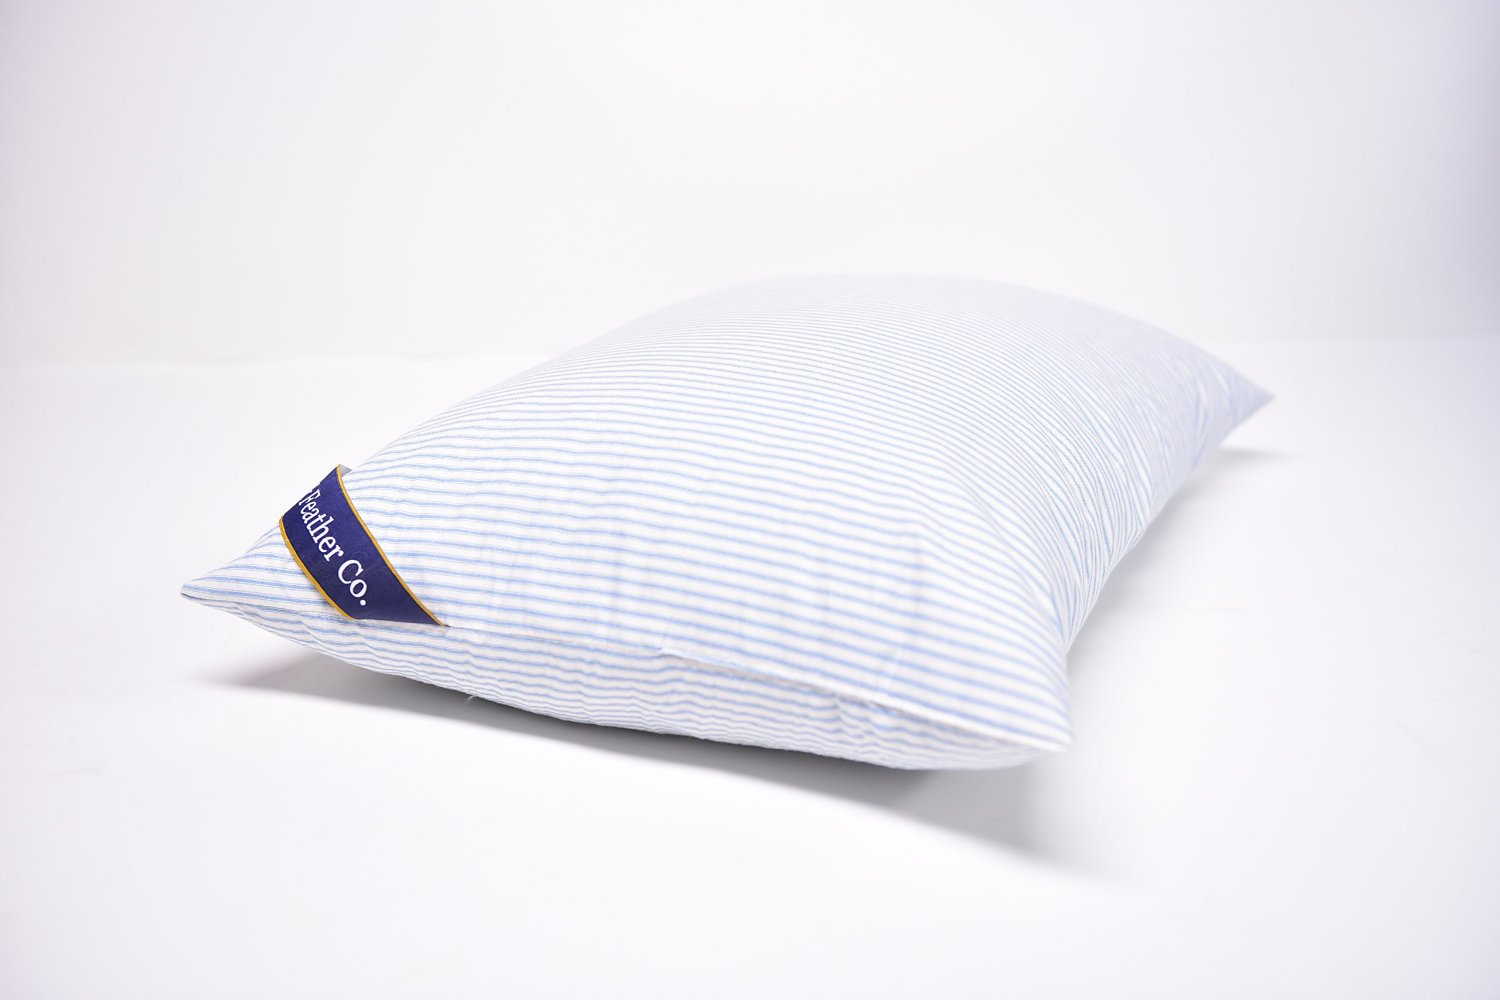 The Ultimate Guide To The Best Firm Pillow For Side Sleepers